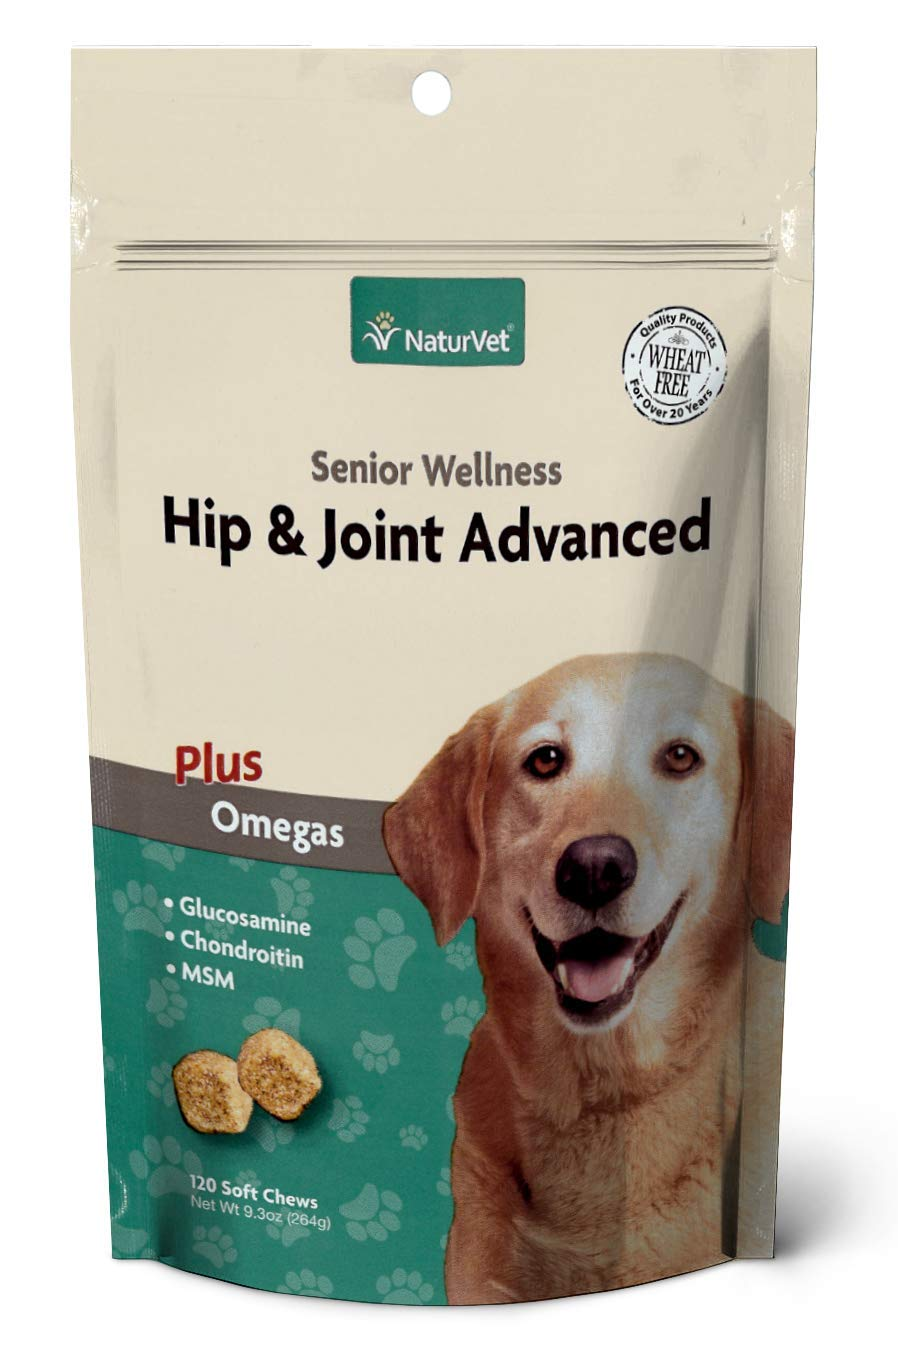 NaturVet - Senior Wellness Hip & Joint Advanced Plus Omegas - Help Support Your Pet's Healthy Hip & Joint Function - Supports Joints, Cartilage & Connective Tissues - 120 Soft Chews by NaturVet